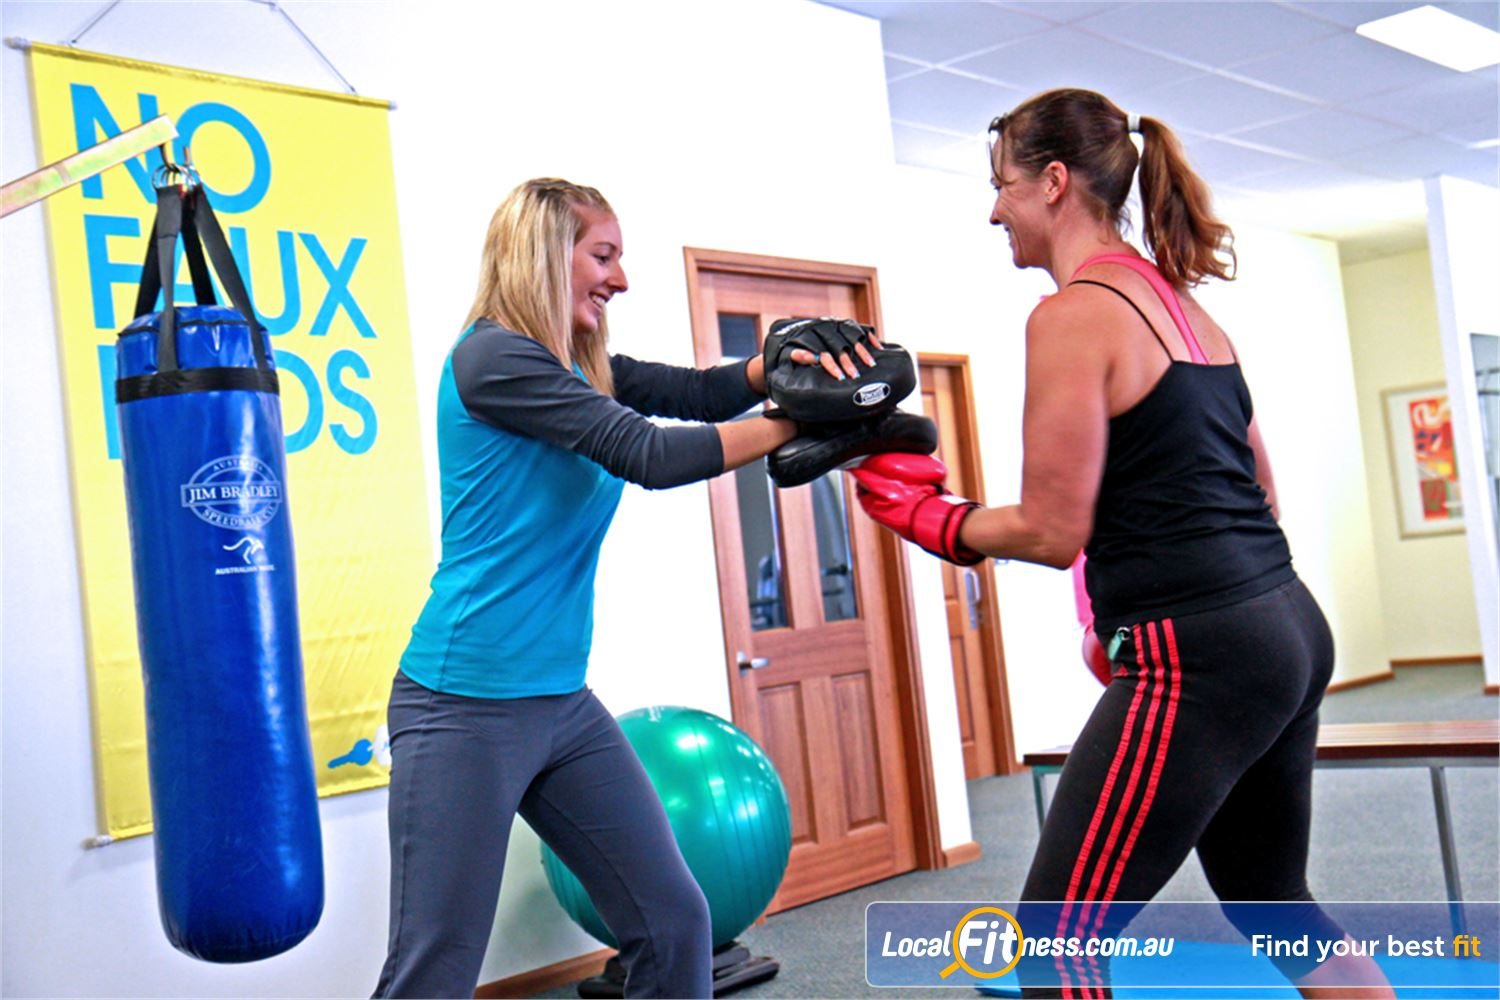 Fernwood Fitness Underwood Lose weight fast with our energetic cardio boxing workouts.